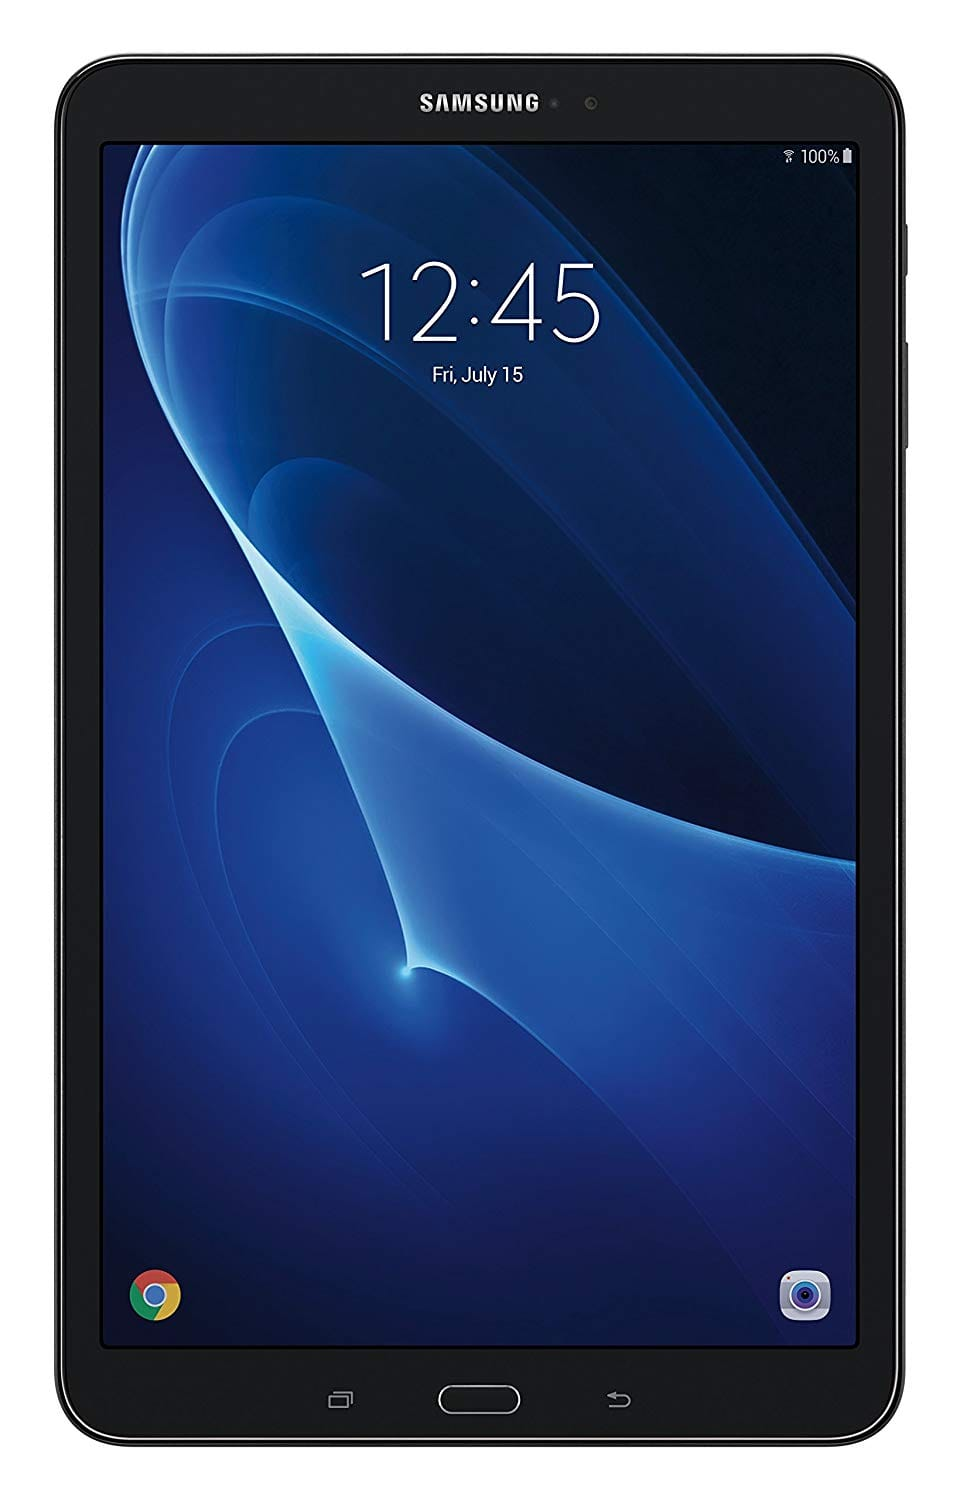 Samsung's Galaxy Tab A now on Amazon for $157.99 down from $273